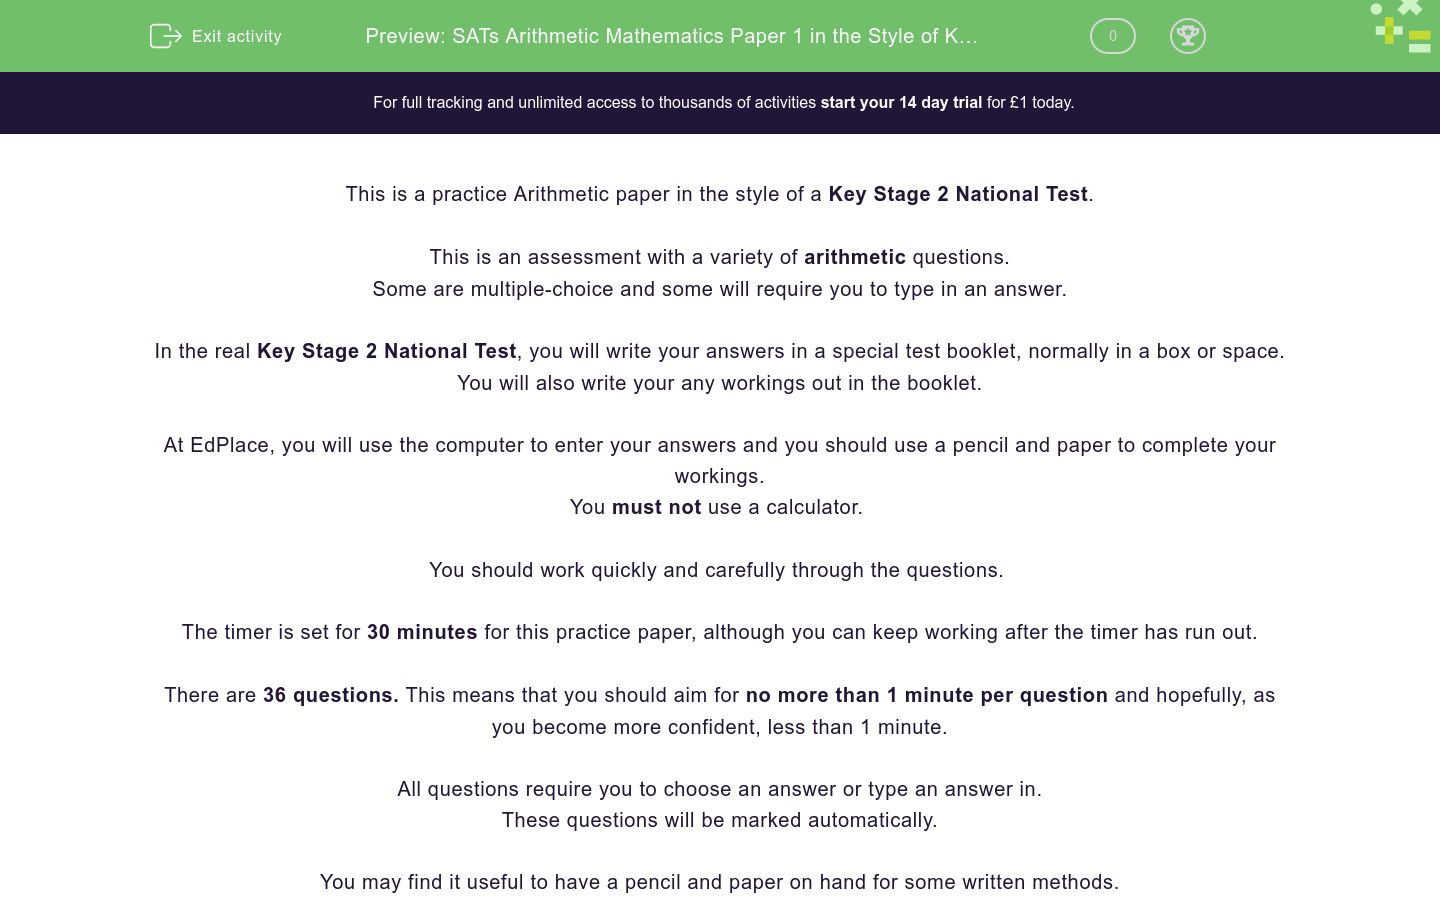 'Arithmetic Mathematics Paper 1 in the Style of Key Stage 2 National Tests. ' worksheet